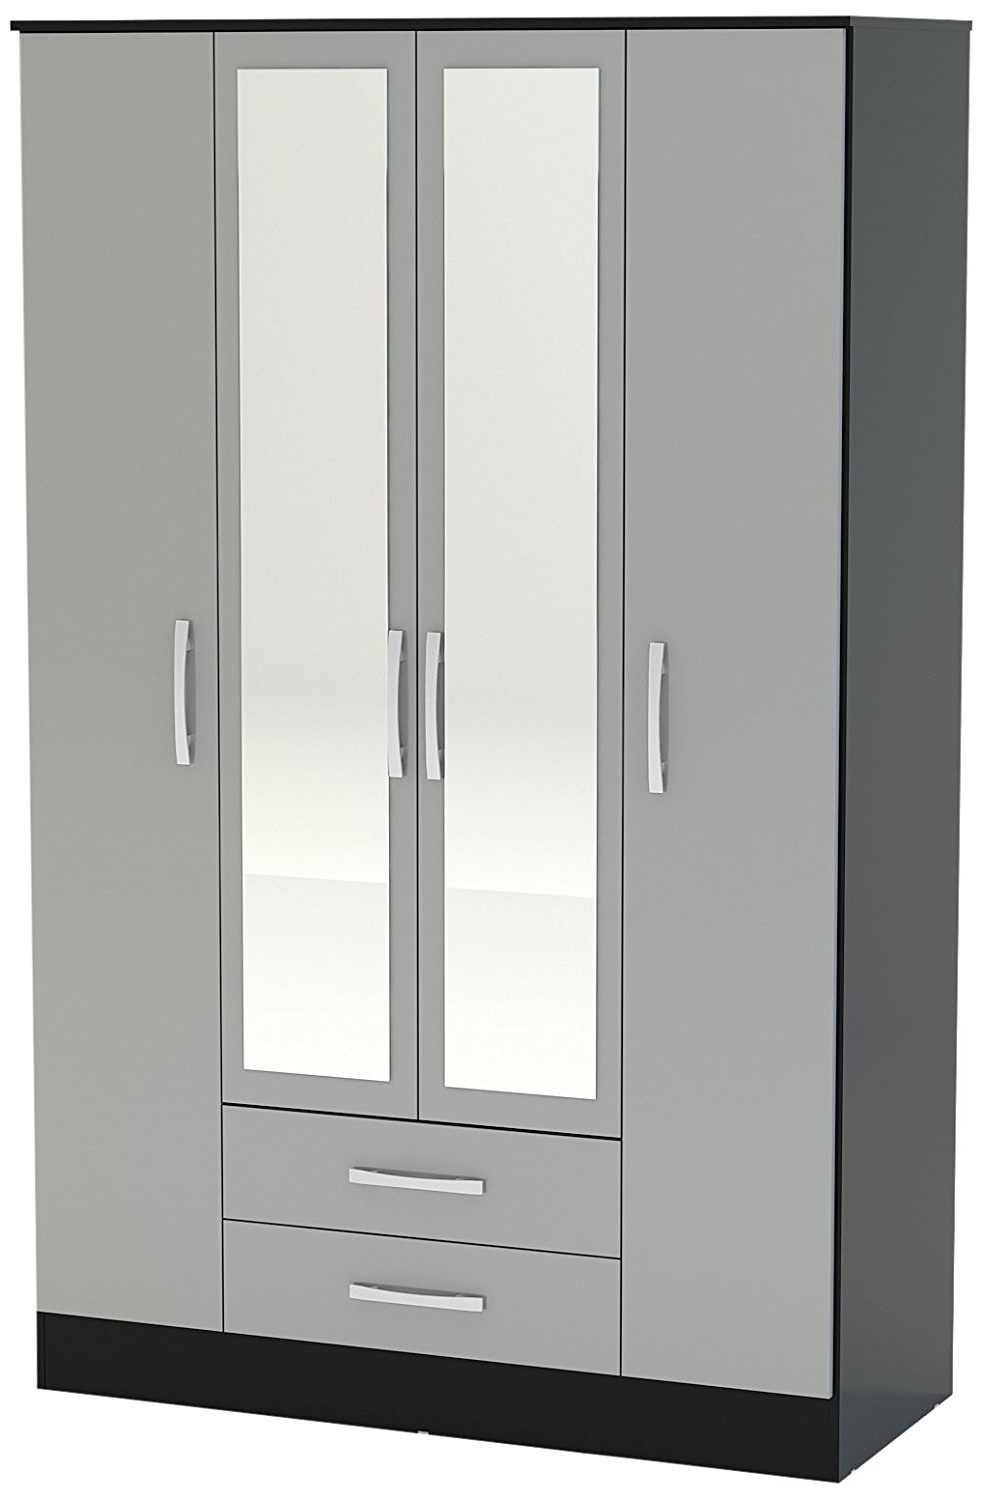 Popular Birlea Lynx 4 Door 2 Drawer Wardrobe With Mirror – High Gloss Intended For Black Wardrobes With Drawers (View 11 of 15)